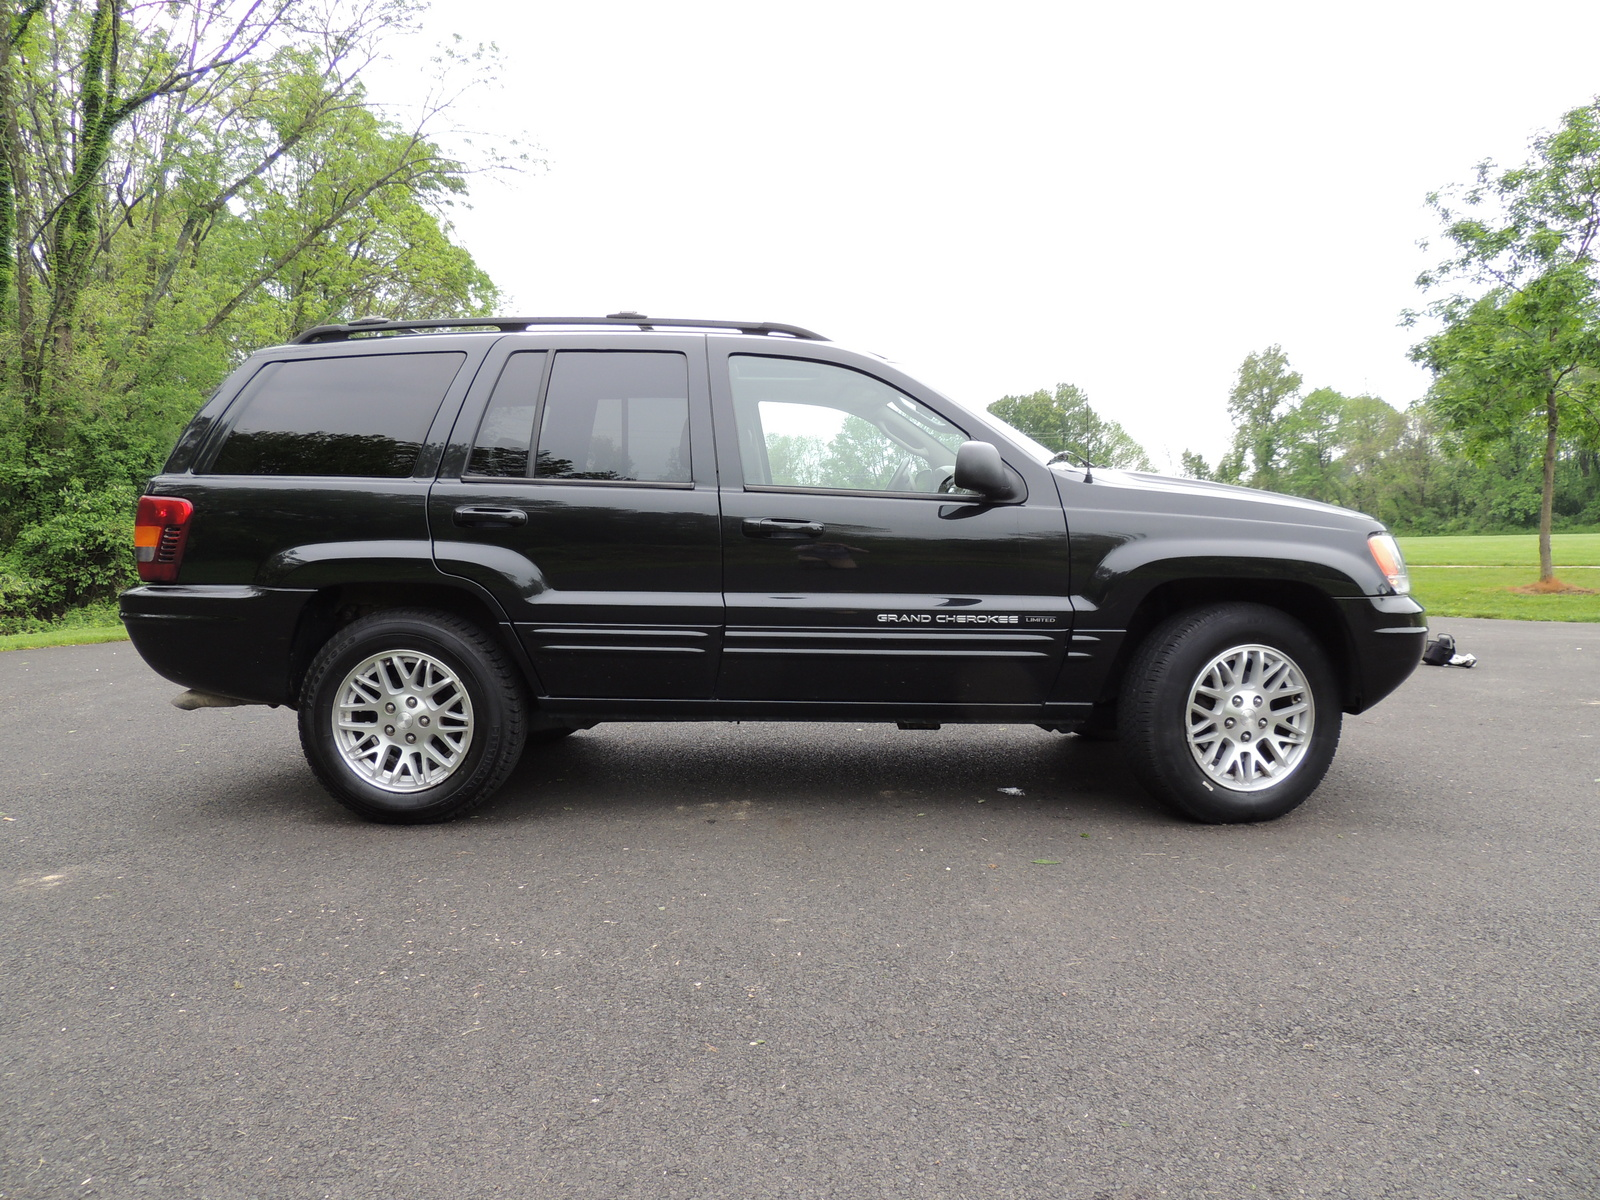 jeep grand cherokee picture - photo #49